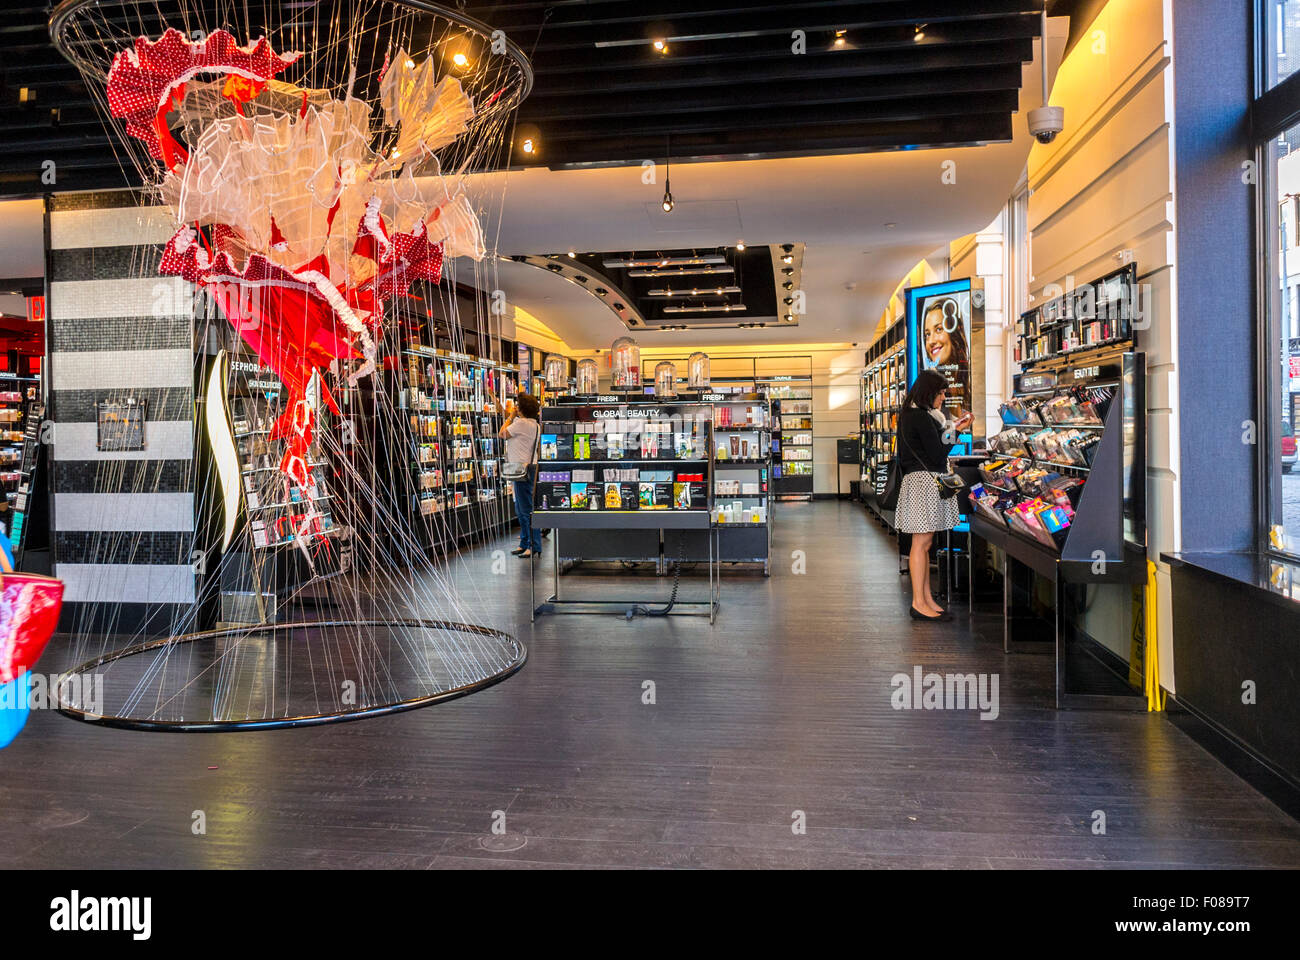 New York City, USA, Meat Packing District, Menschen beim Einkaufen in Concept-Store Stockbild